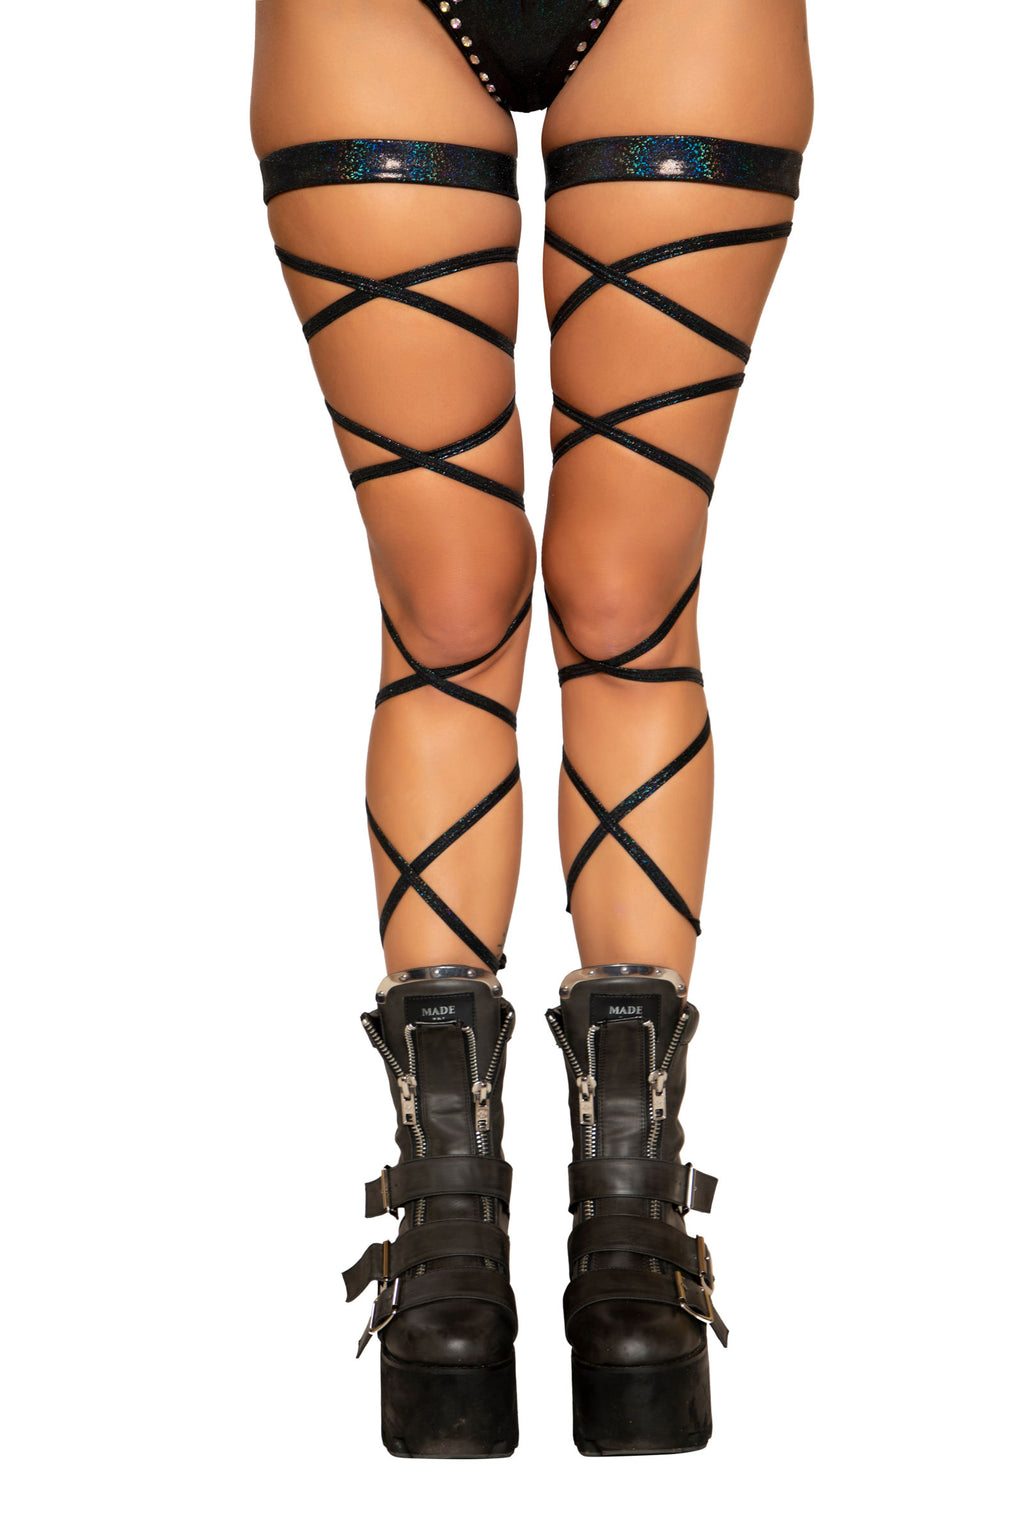 "100"" Black Shimmer Leg Strap with Attached Garter"